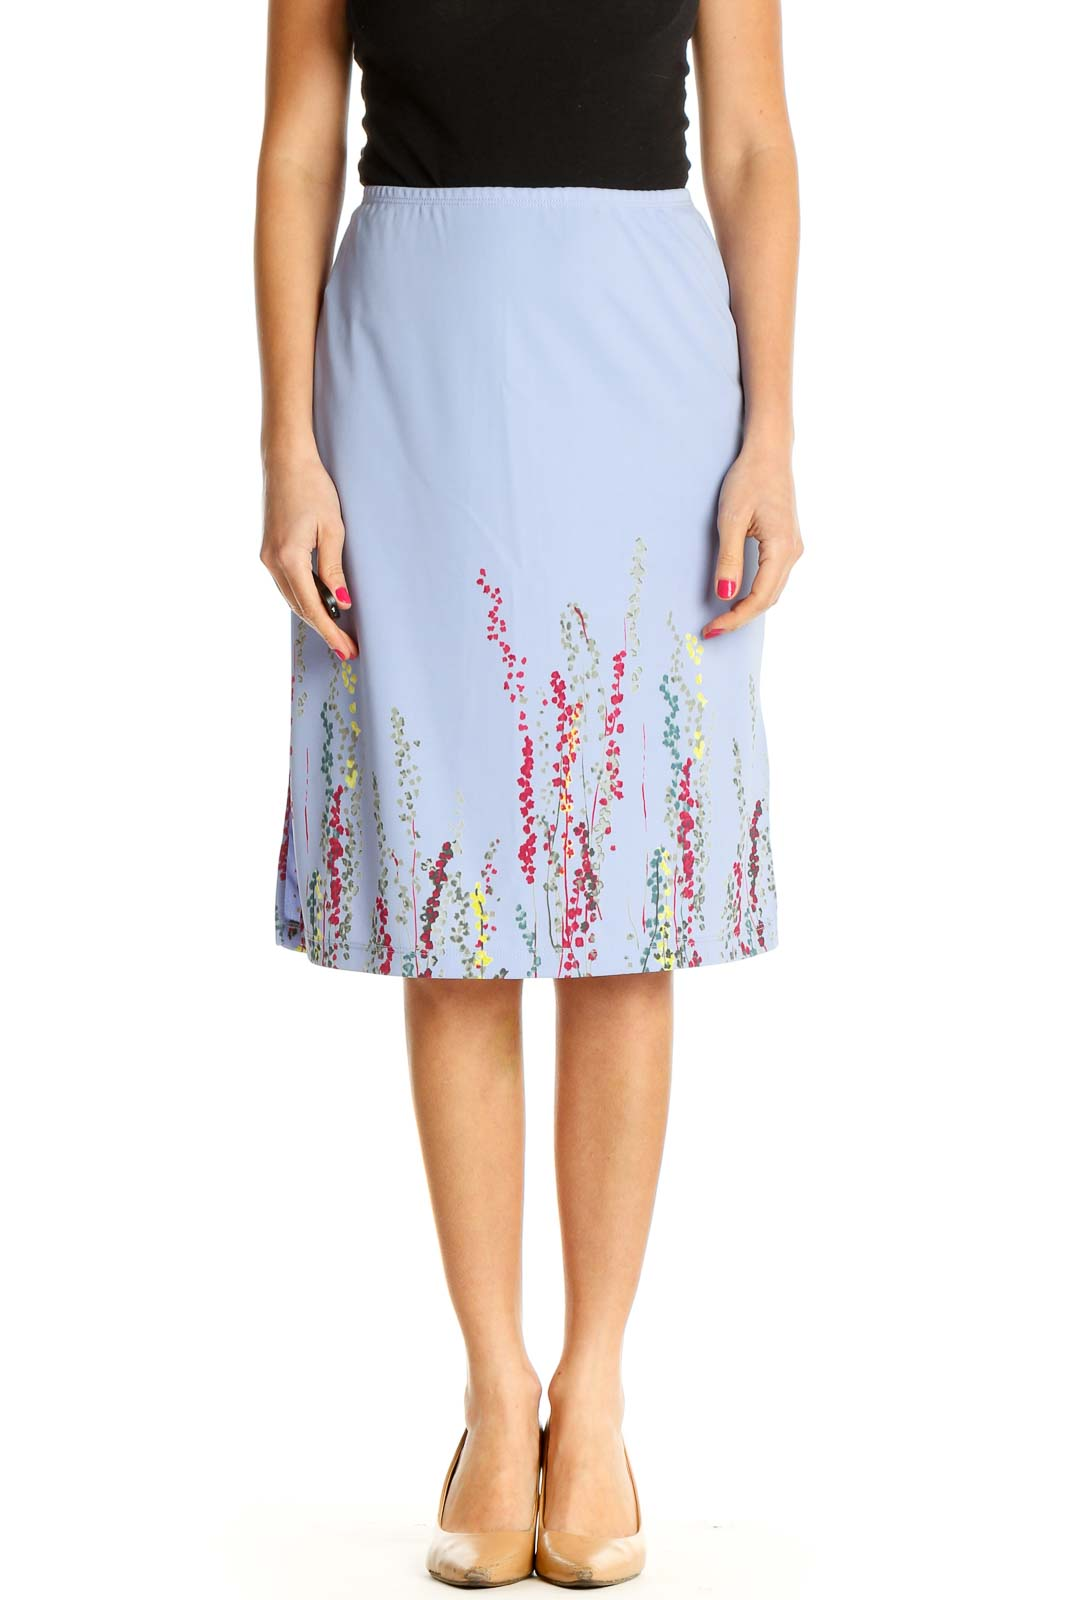 Blue Textured Chic A-Line Skirt Front